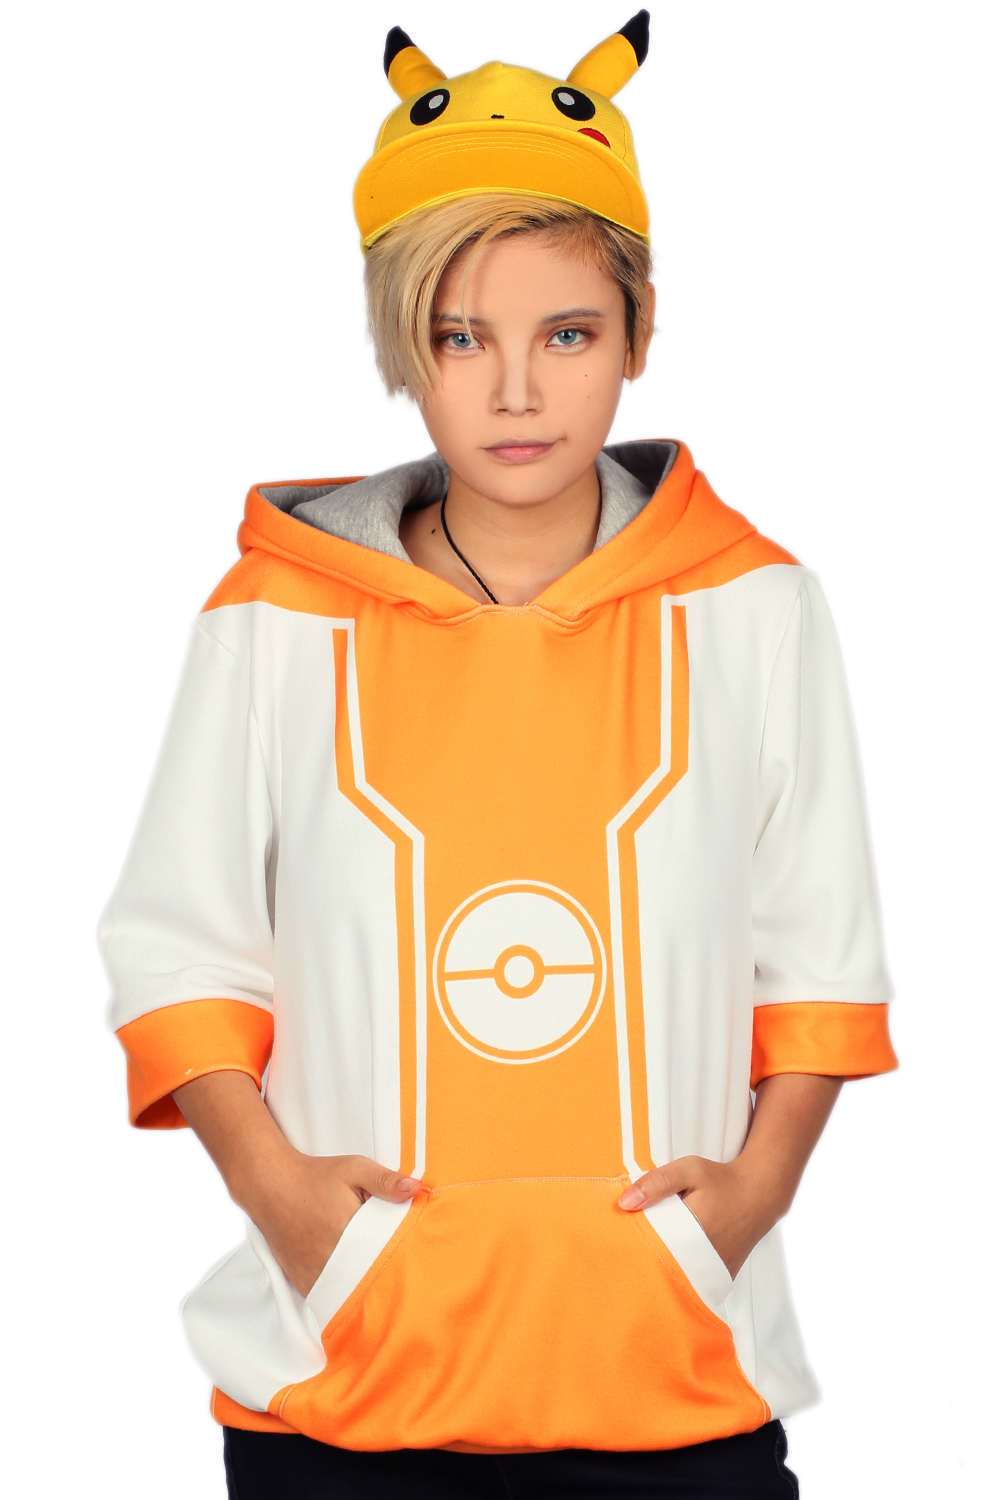 XCOSER The Hot Game Pokemon GO Hoodie Half Sleeve Pullover Cosplay&Halloween Costume for Teenagers